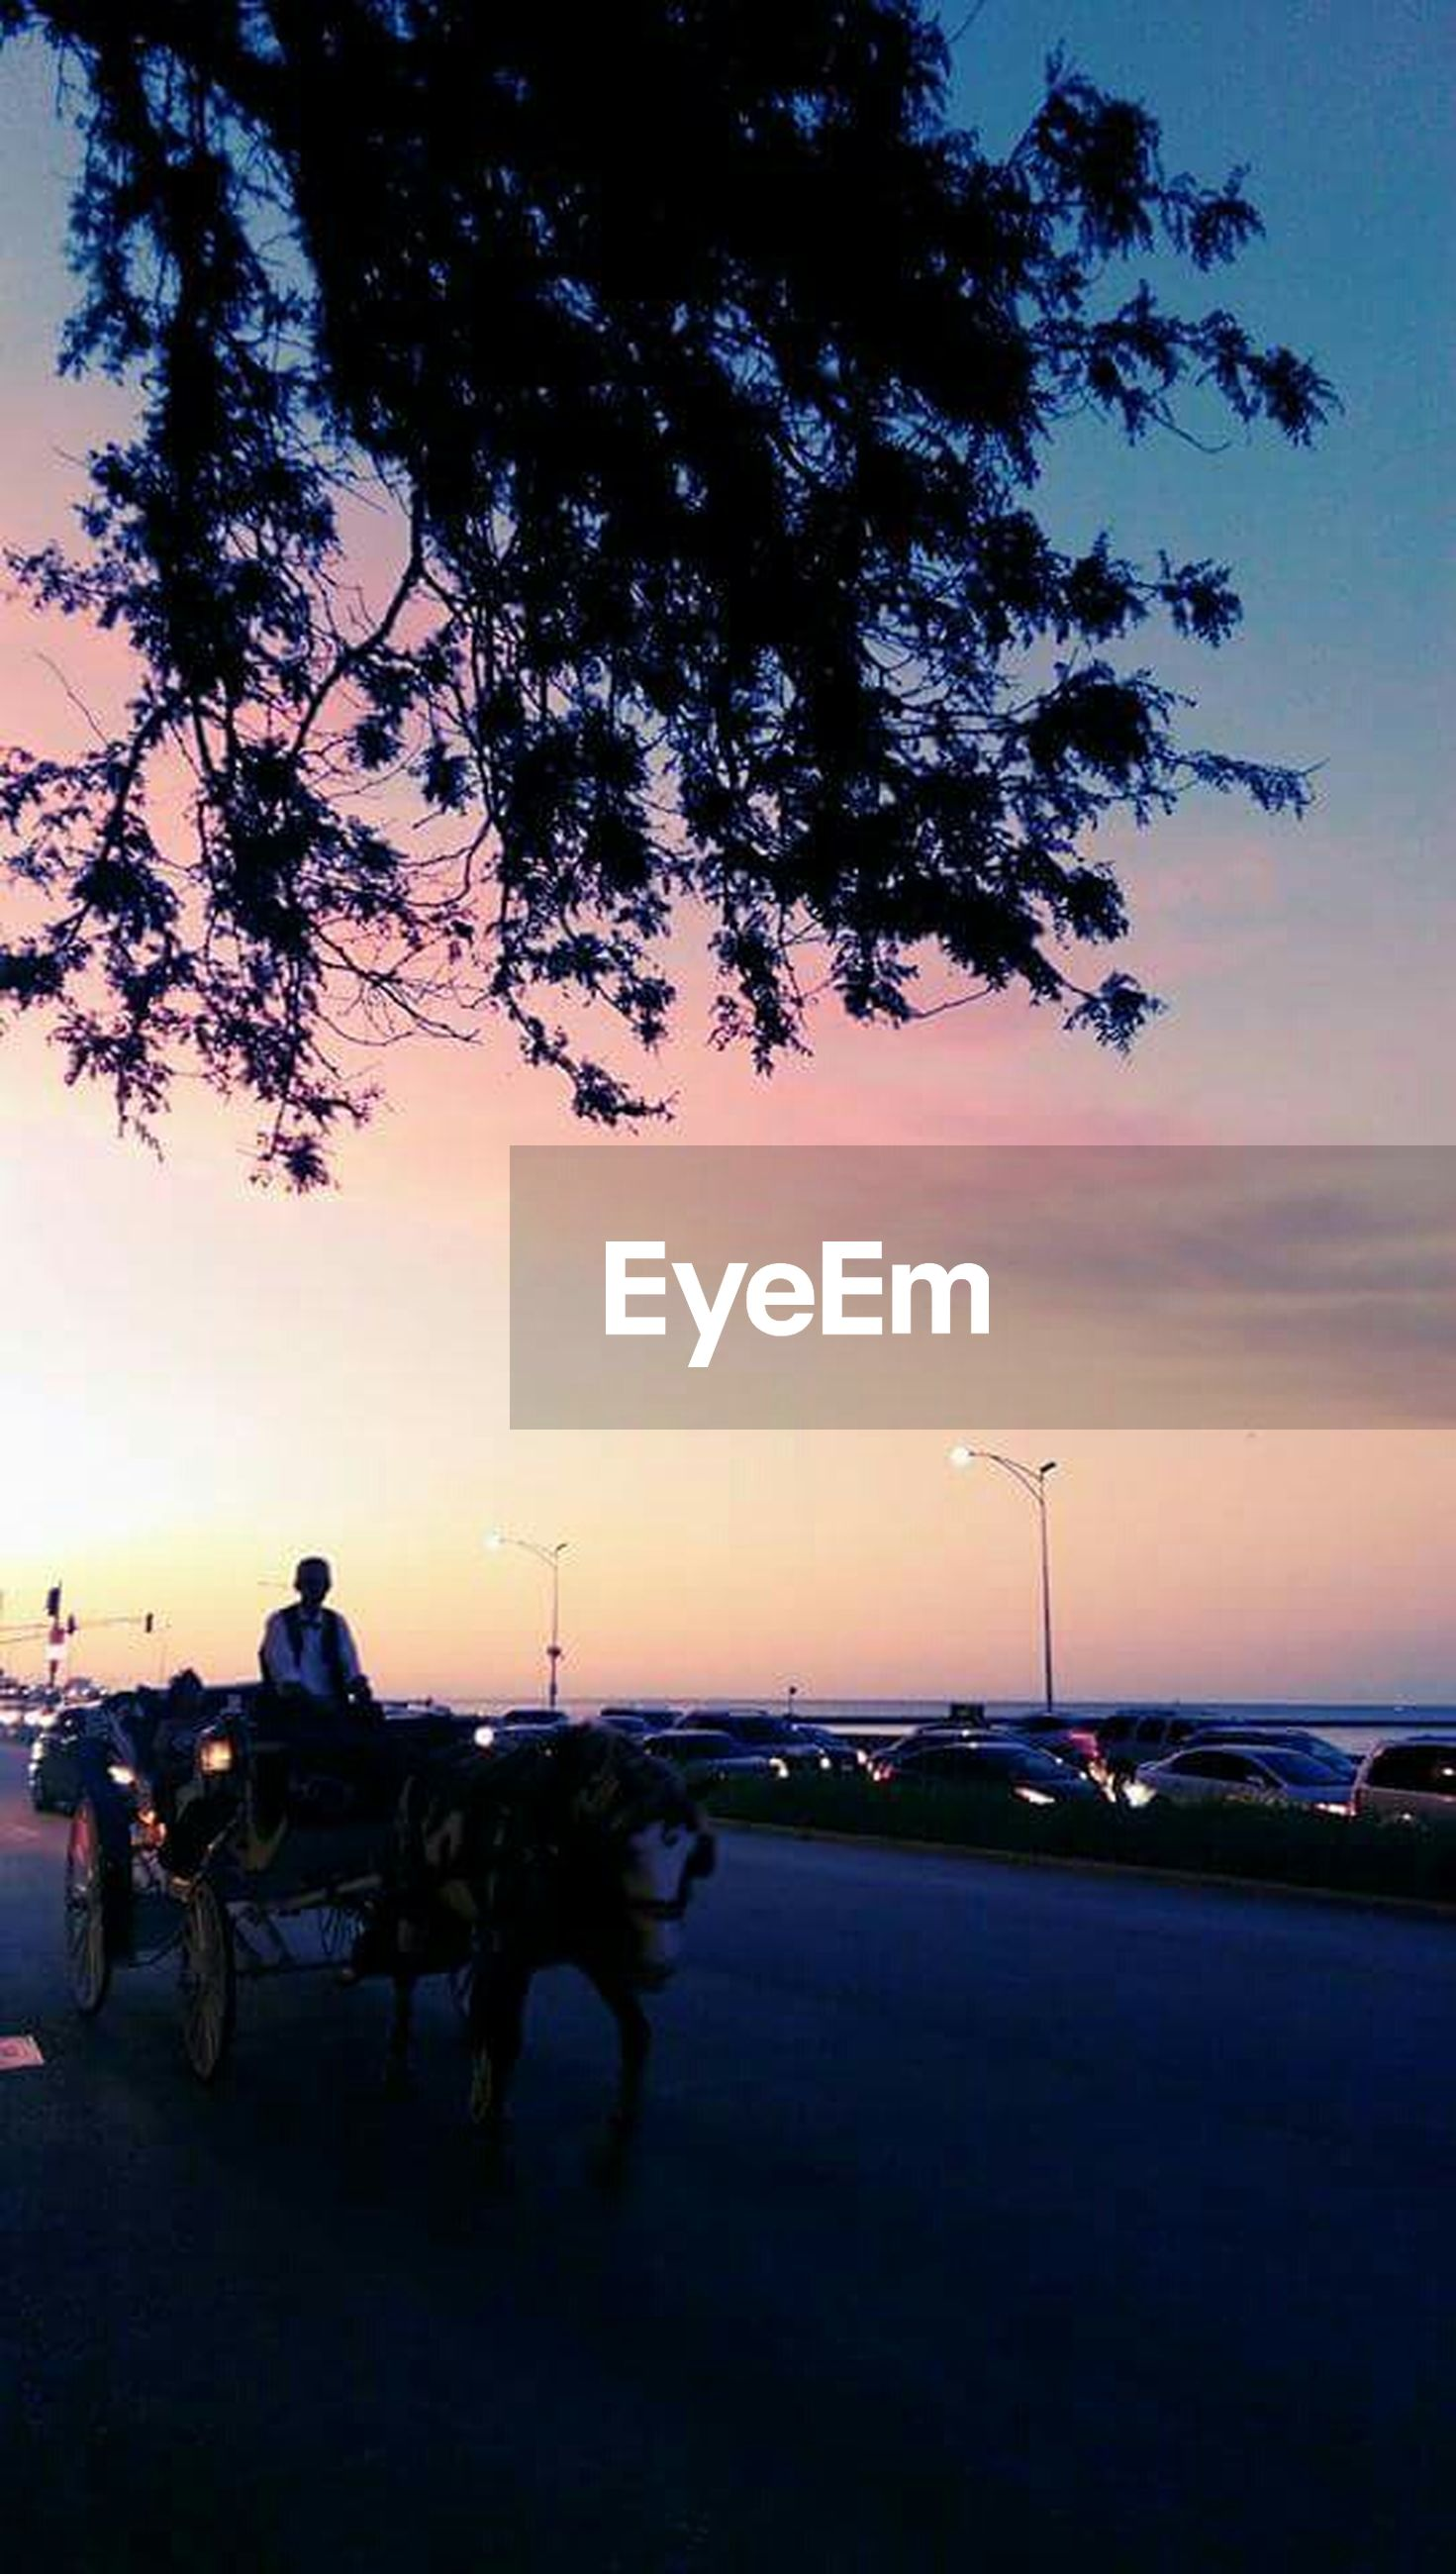 transportation, mode of transport, land vehicle, car, tree, sunset, sky, road, silhouette, street, stationary, travel, street light, the way forward, dusk, parking, nature, scenics, outdoors, tranquility